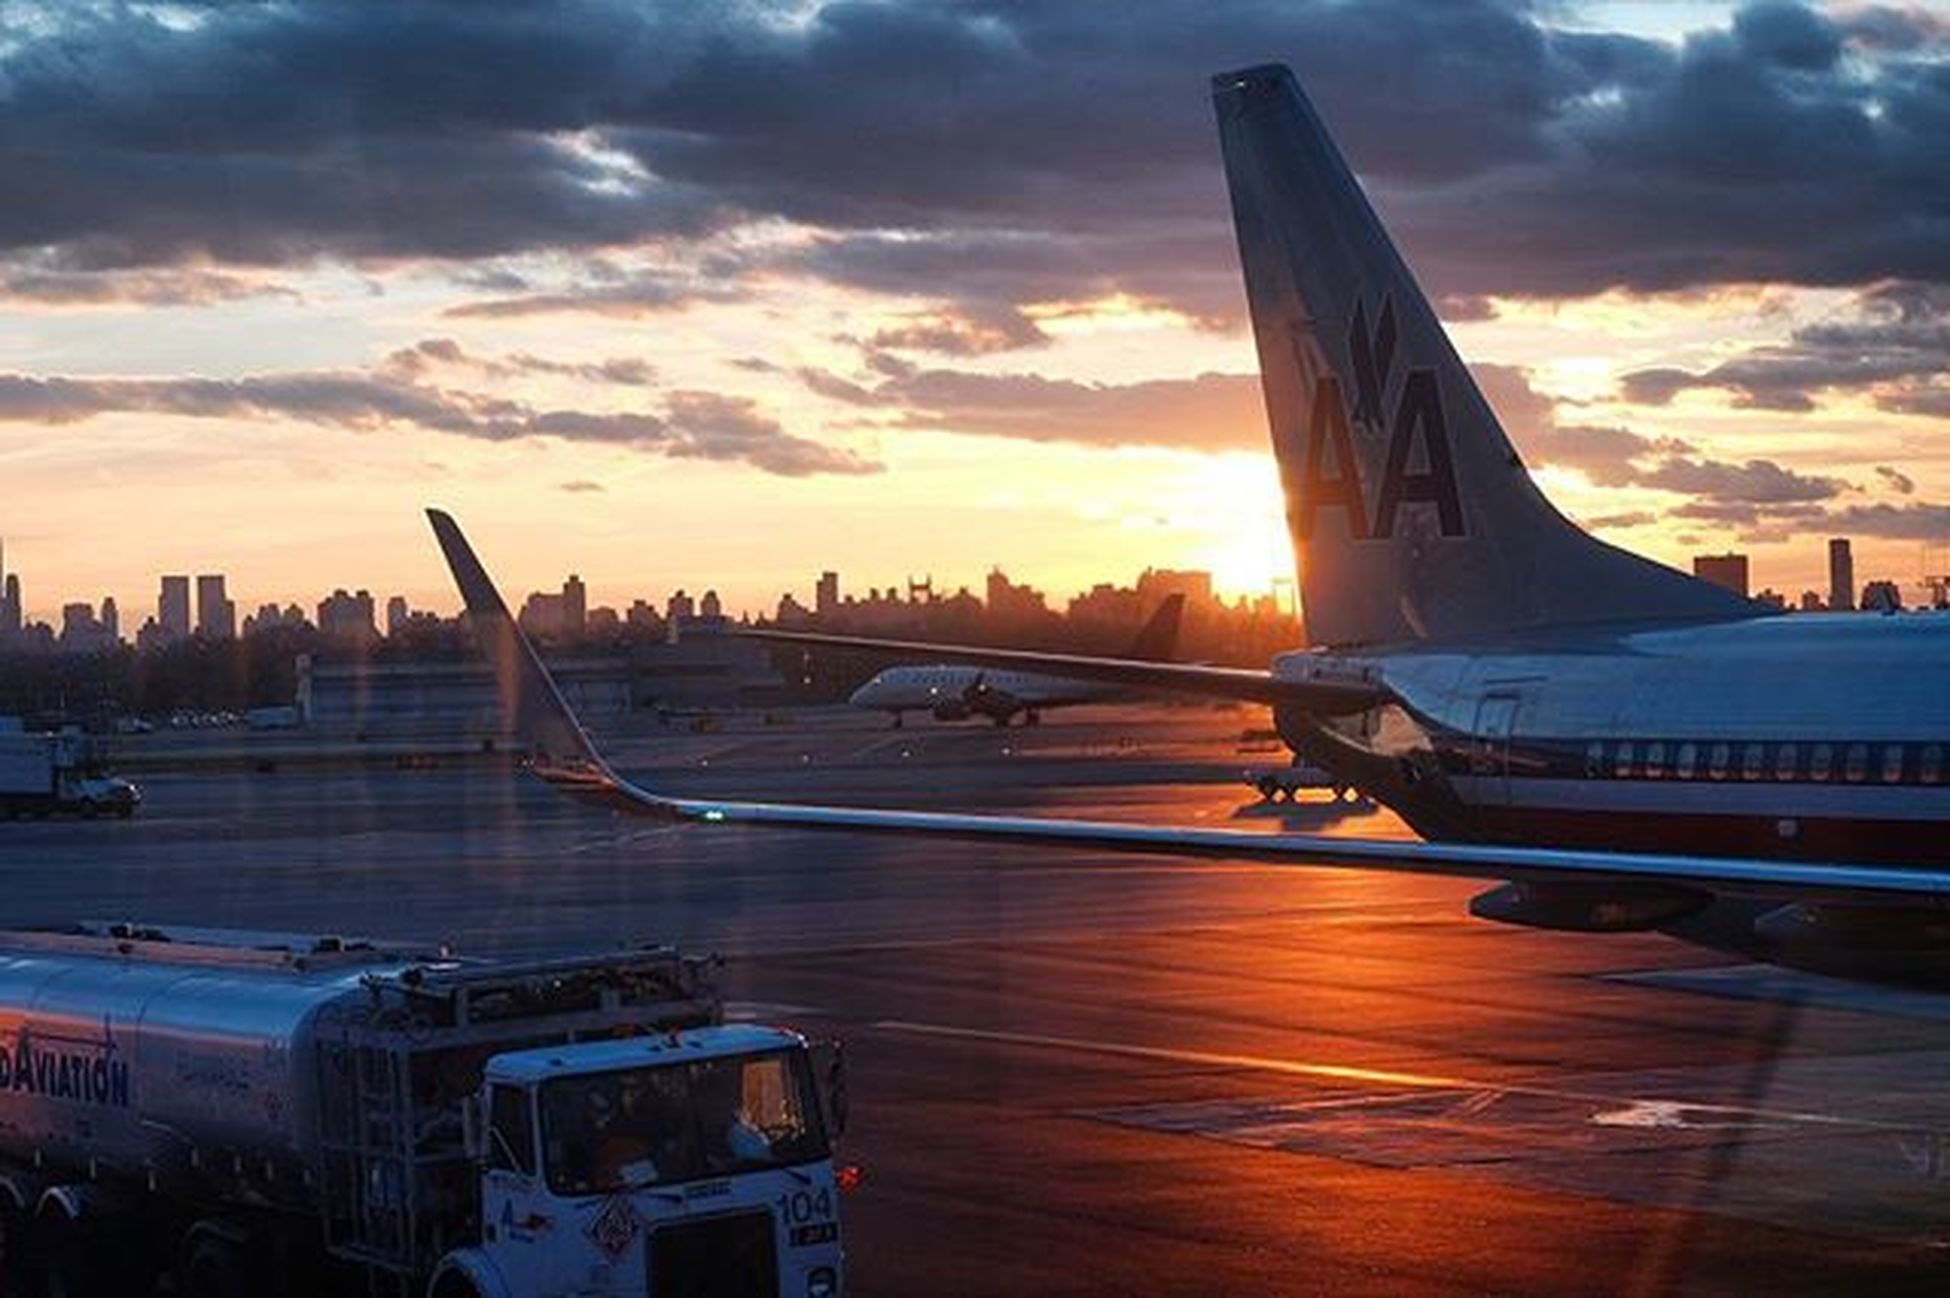 Even though I got bumped off the plane by another other standby customer, still made the most of my time at the airport LGA Americanairlines Sunset Getoutandshoot Fujifimxt1 56mm Airport